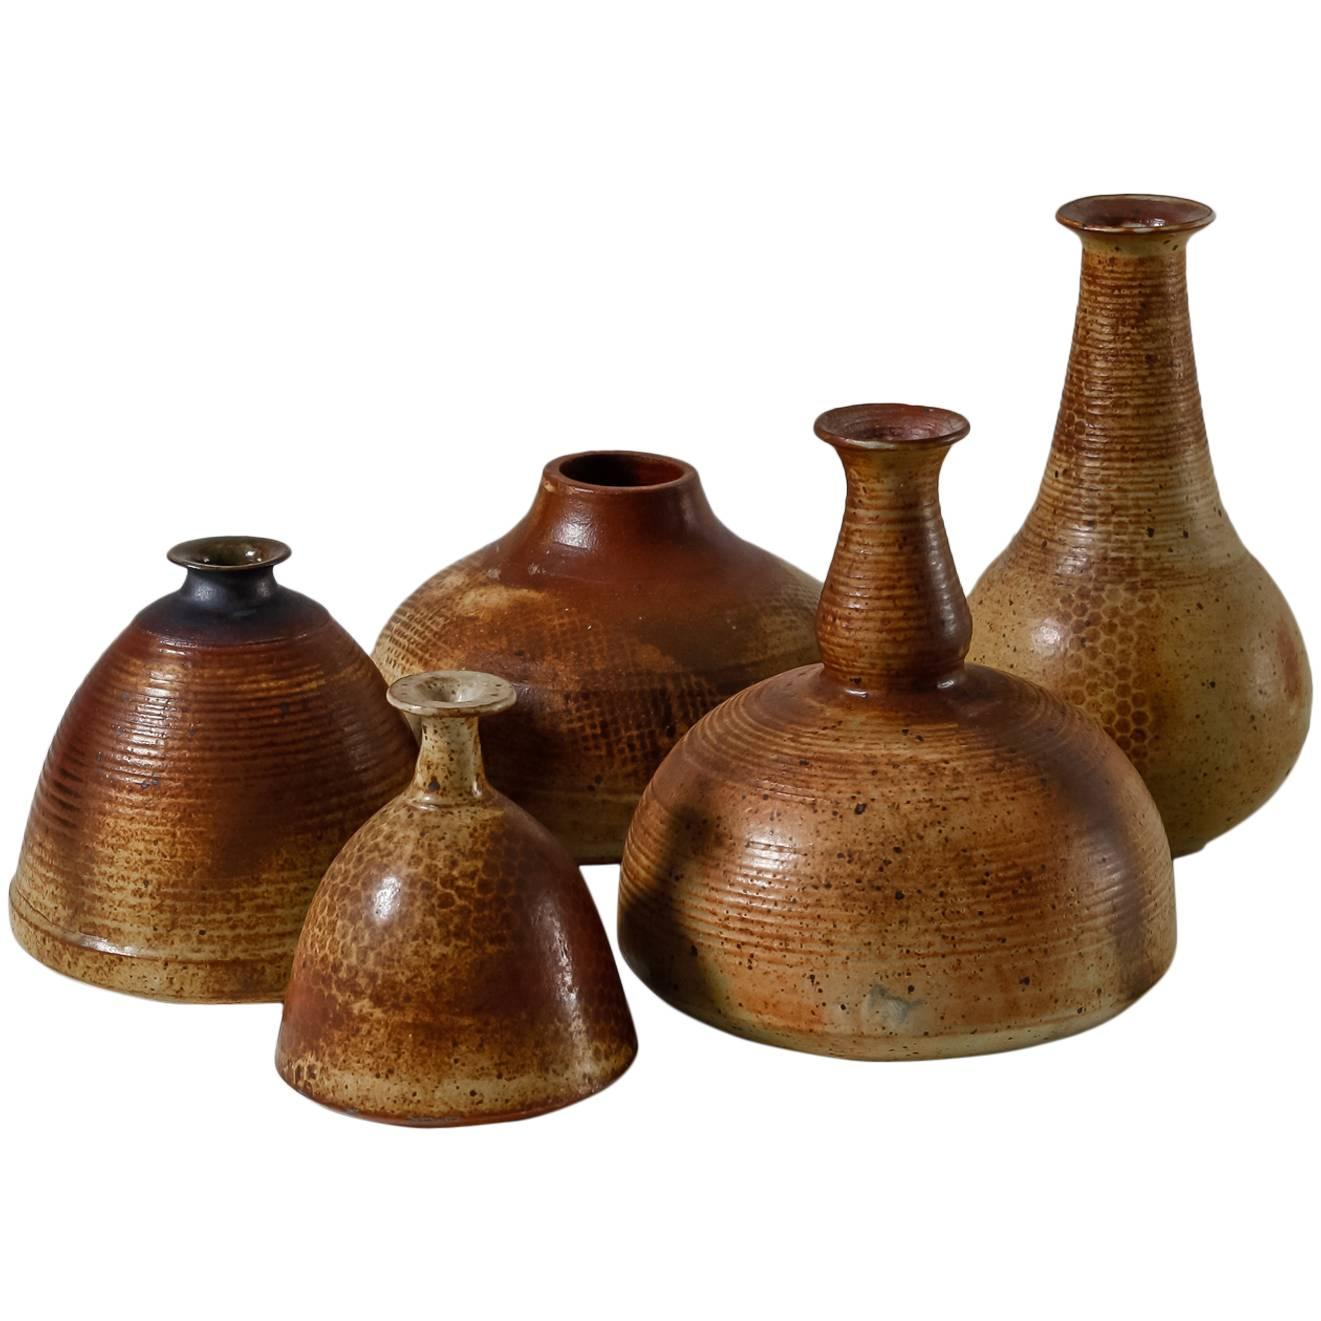 Franco Agnese Collection of Five Ceramic Vases, France, 1960s